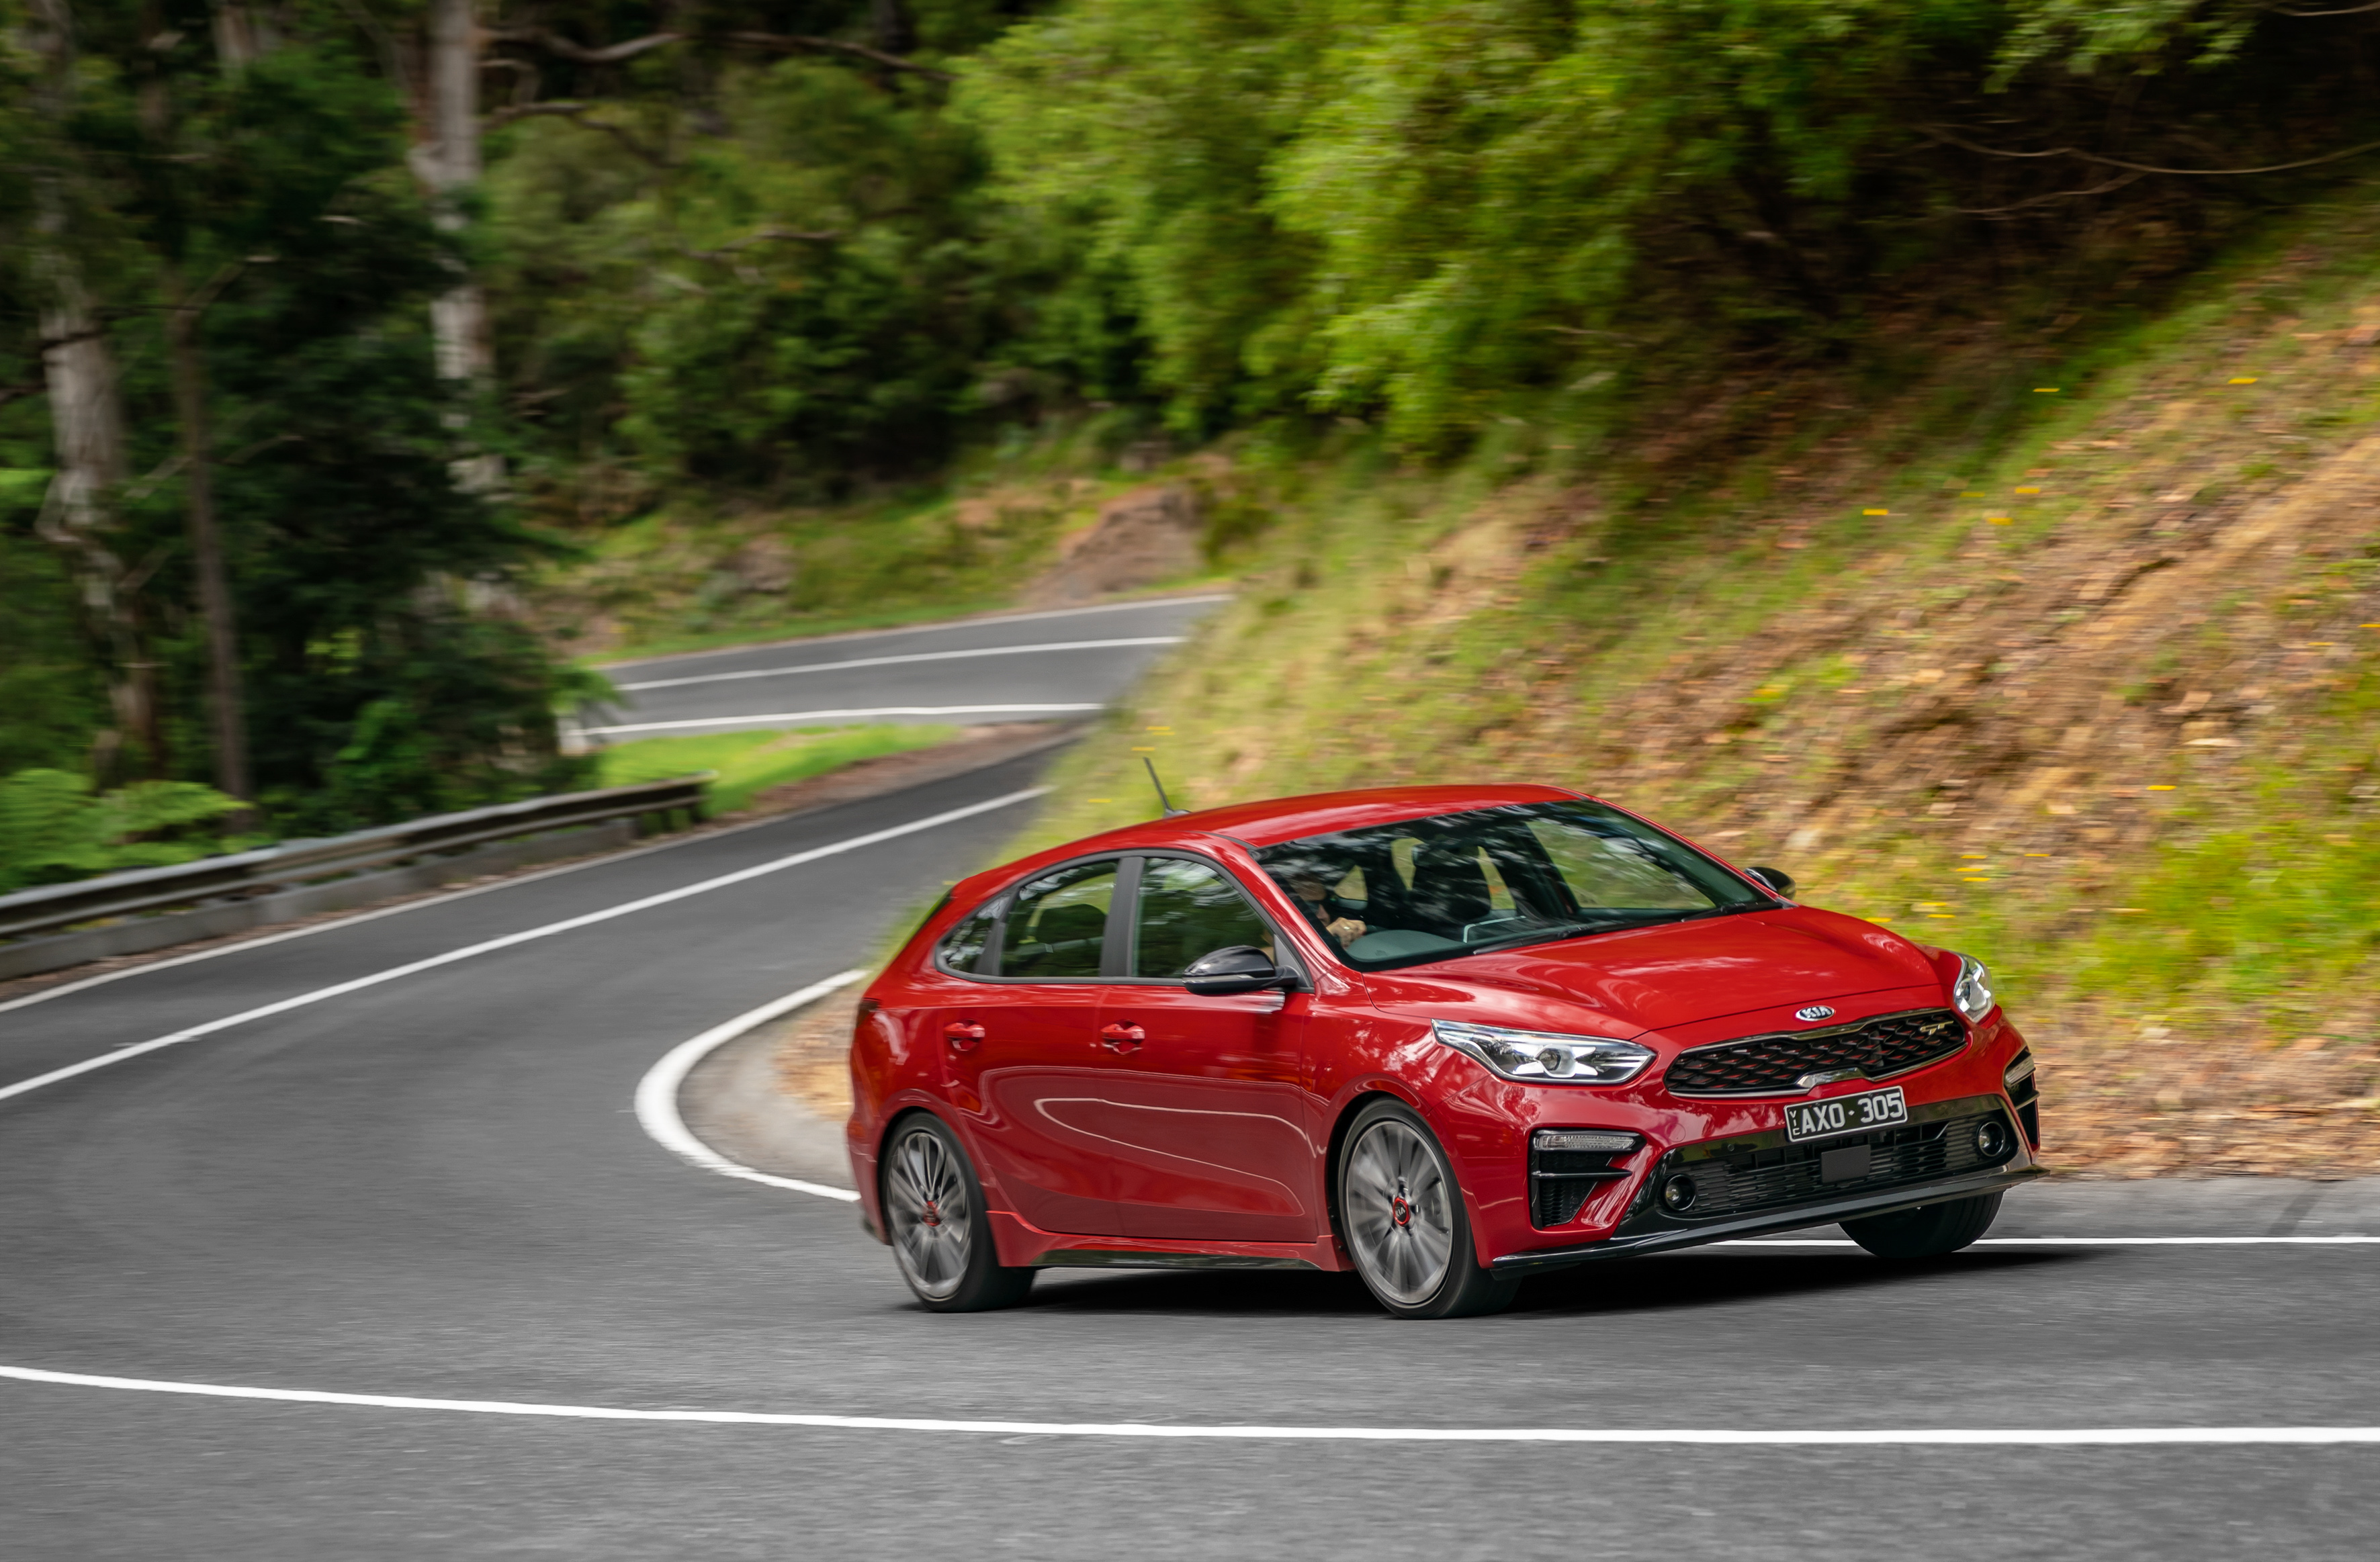 Kia's new Cerato hatch